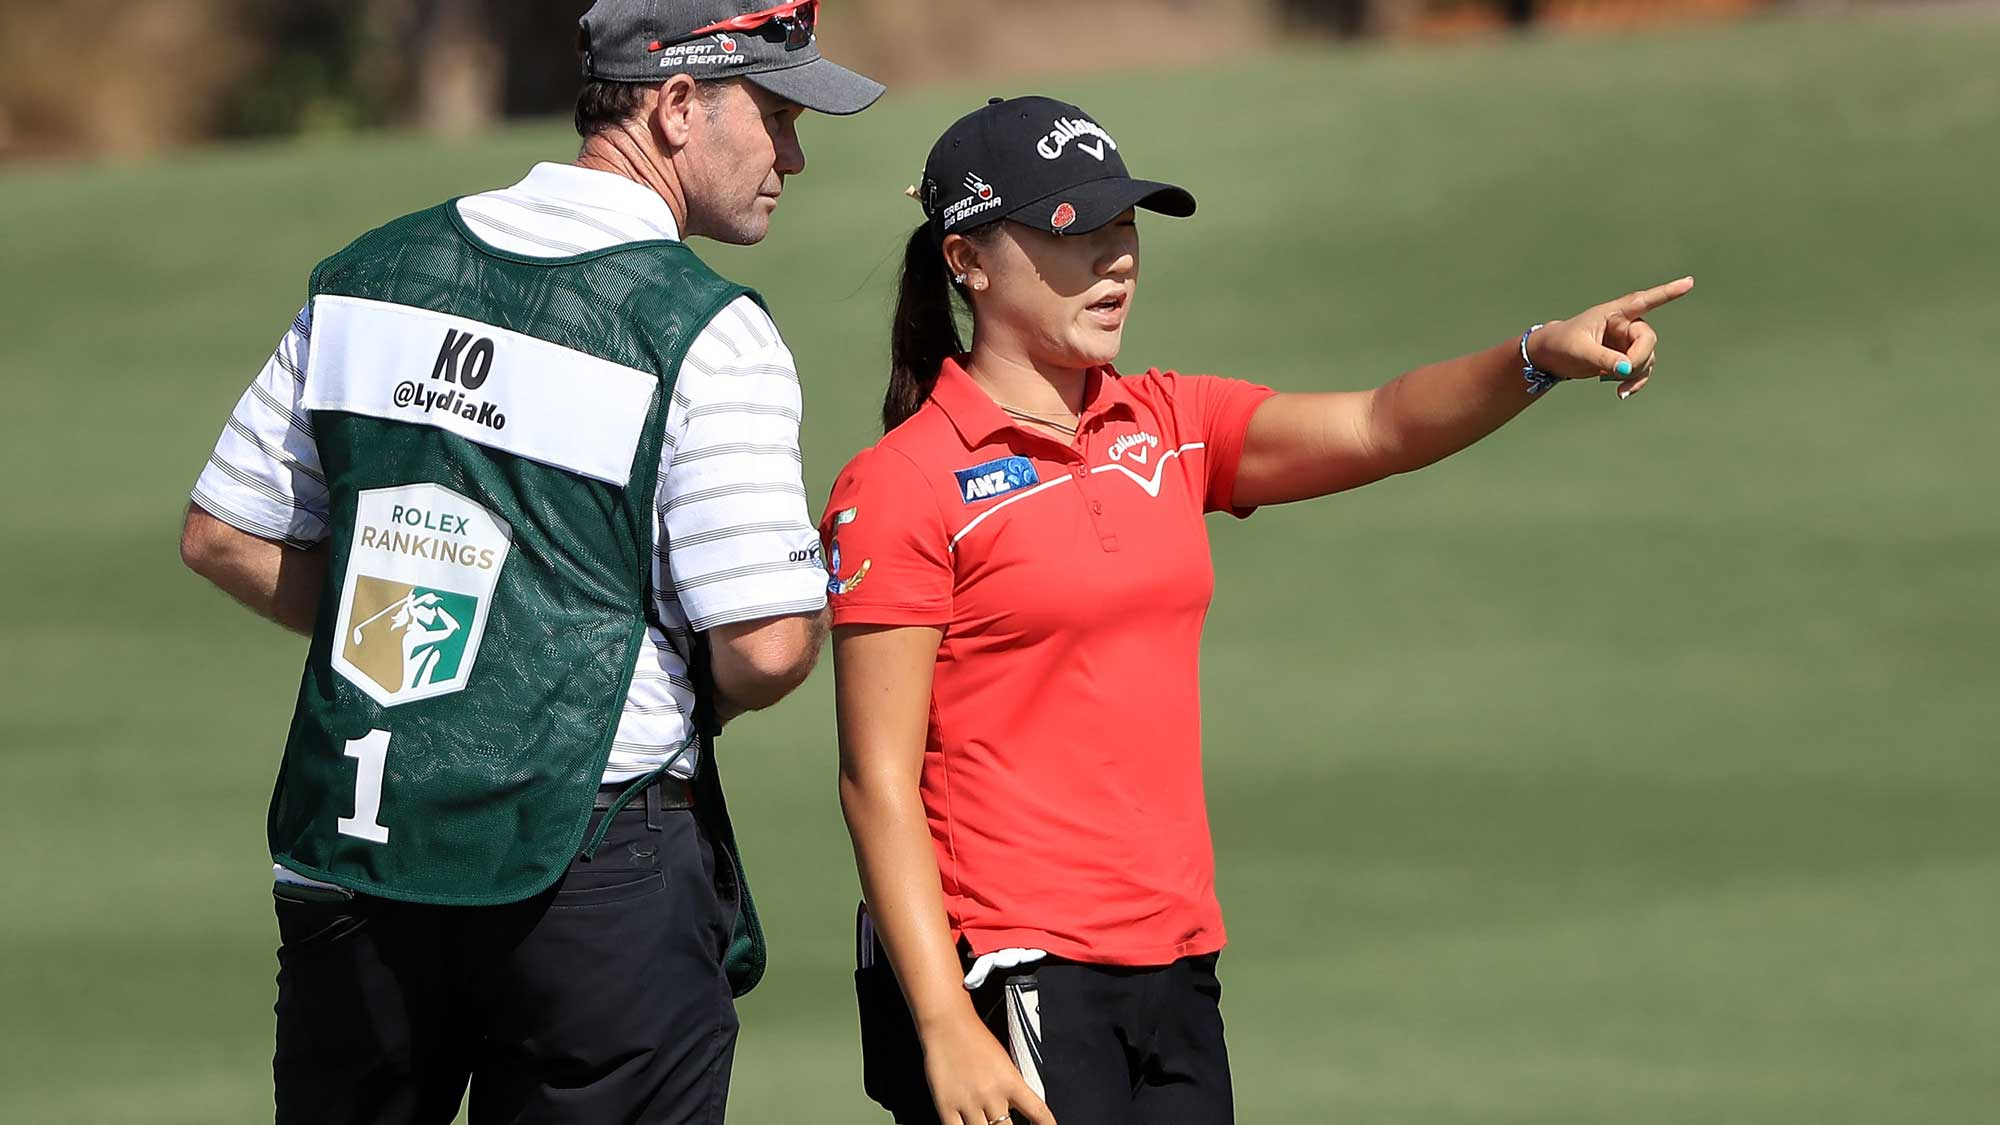 Lydia Ko of New Zealand talks with her caddie on the eighth hole during the second round of the CME Group Tour Championship at Tiburon Golf Club